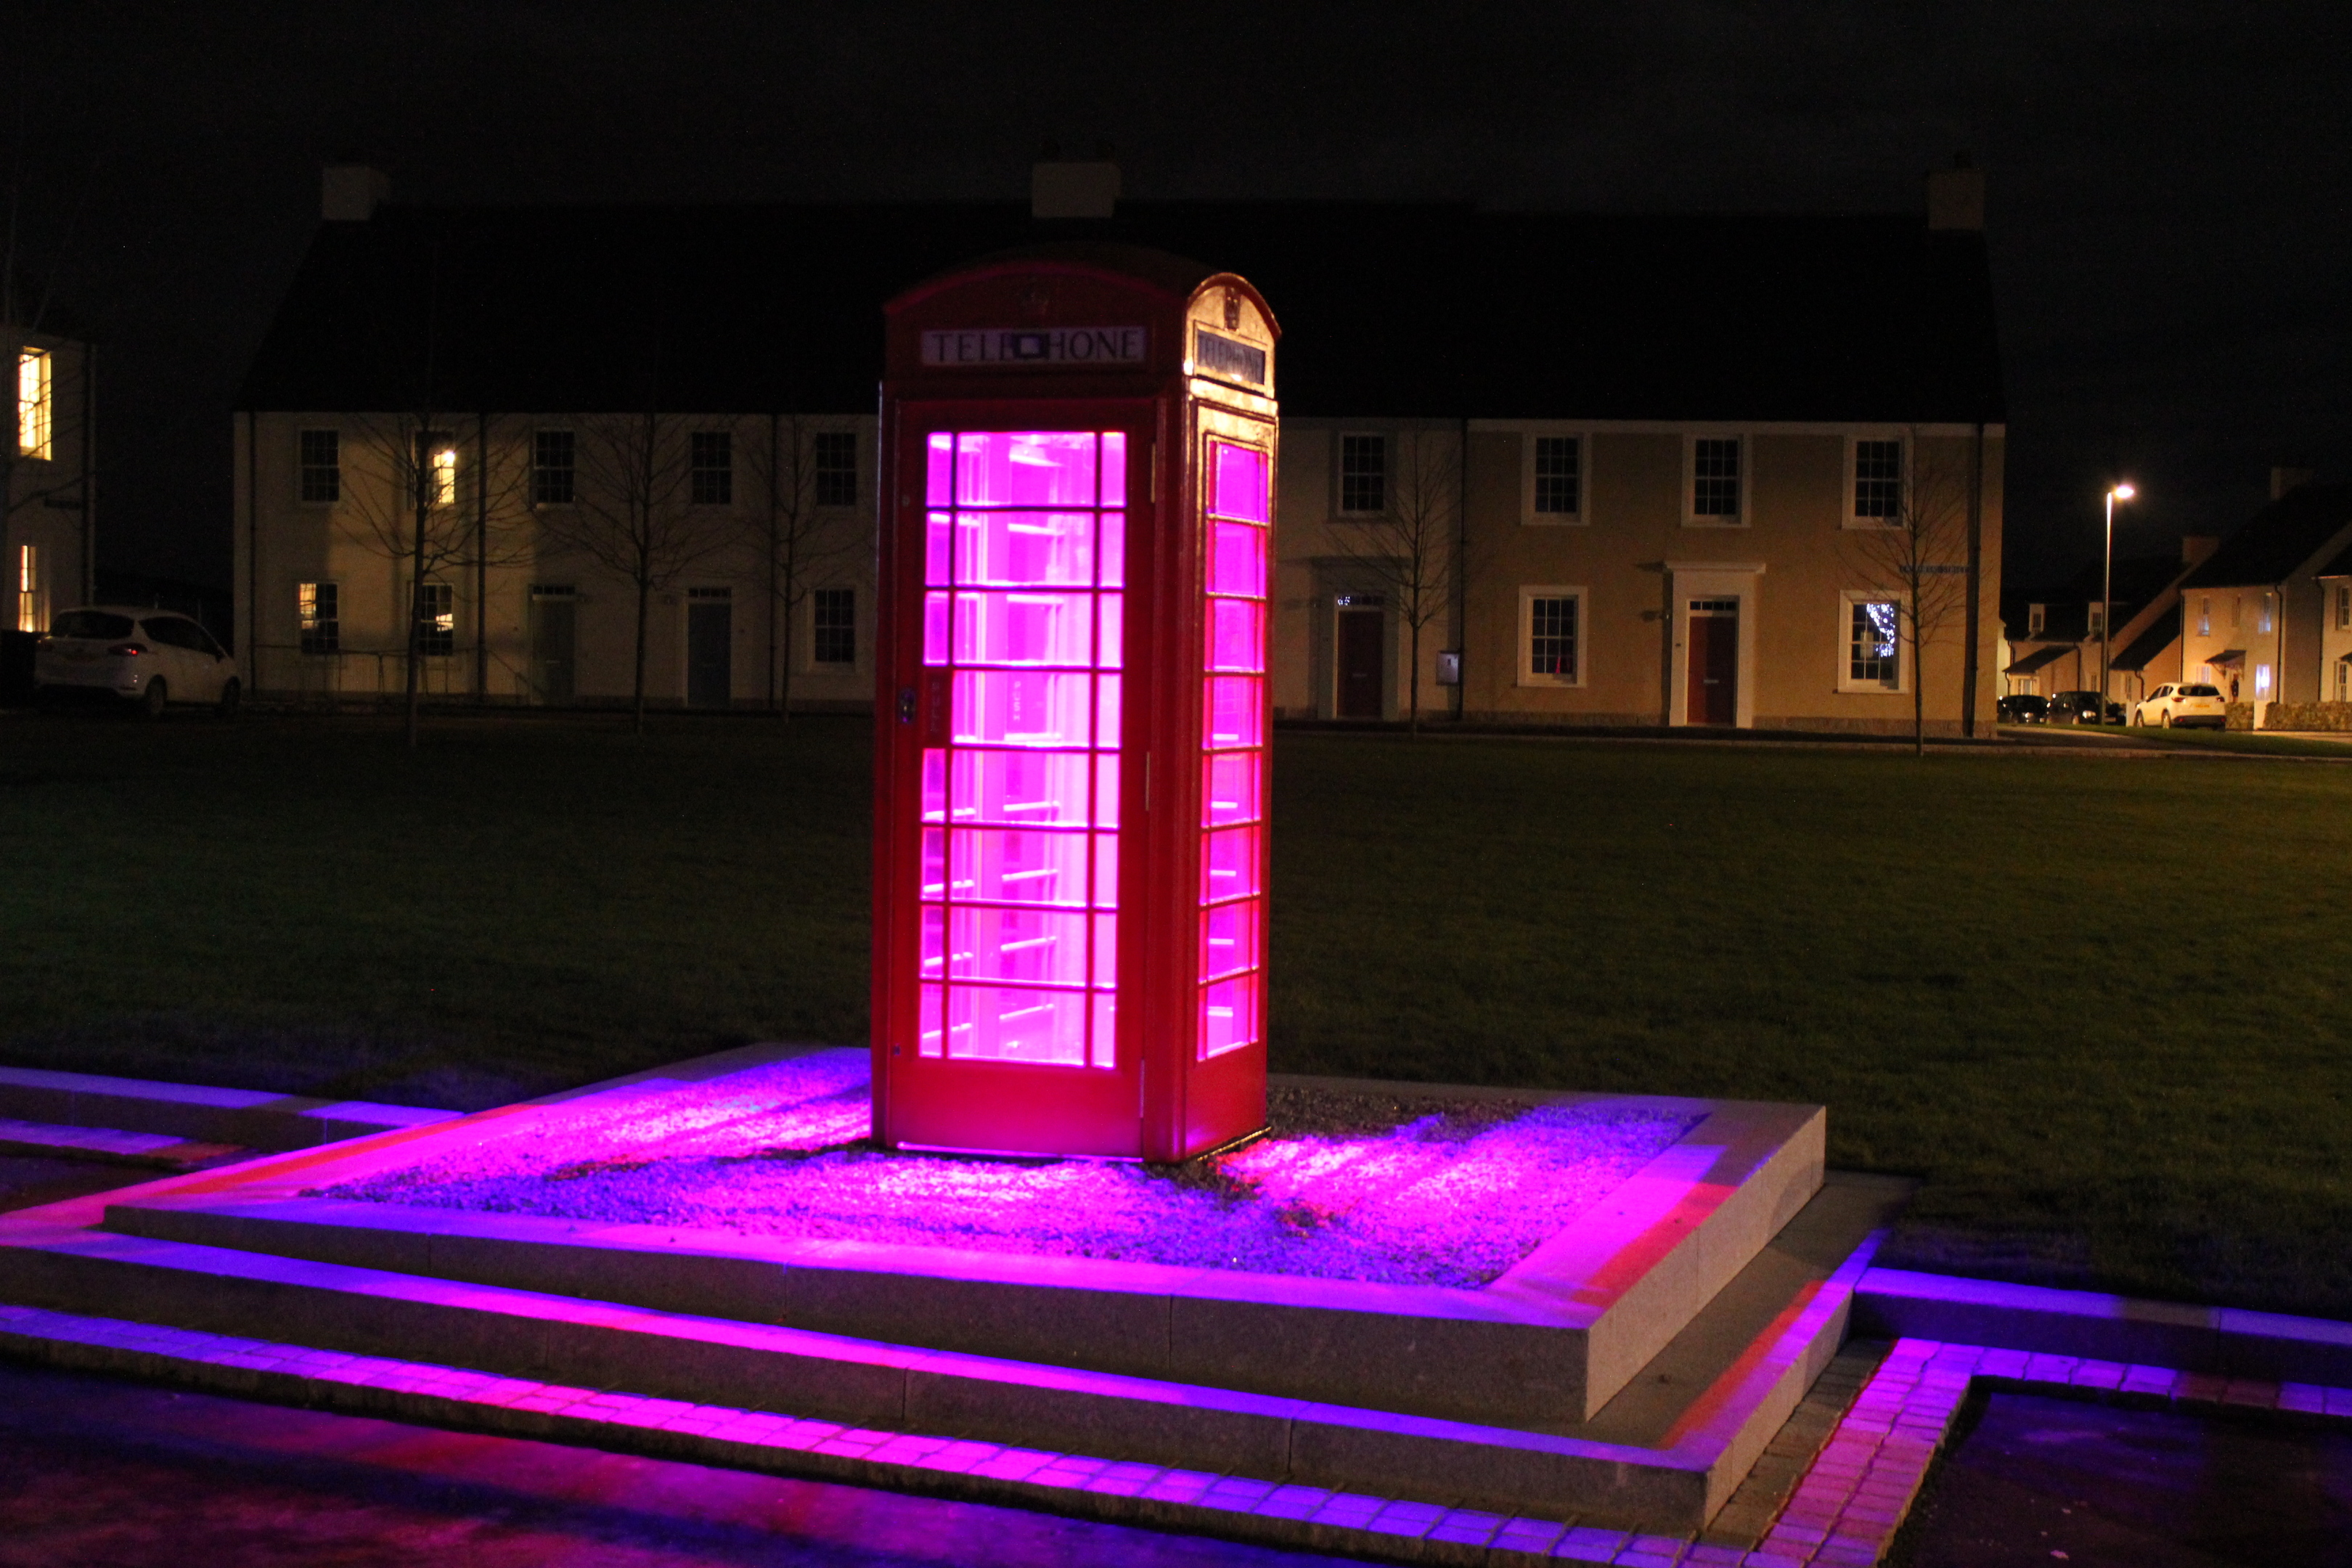 Postbox currently being featured on the plinth